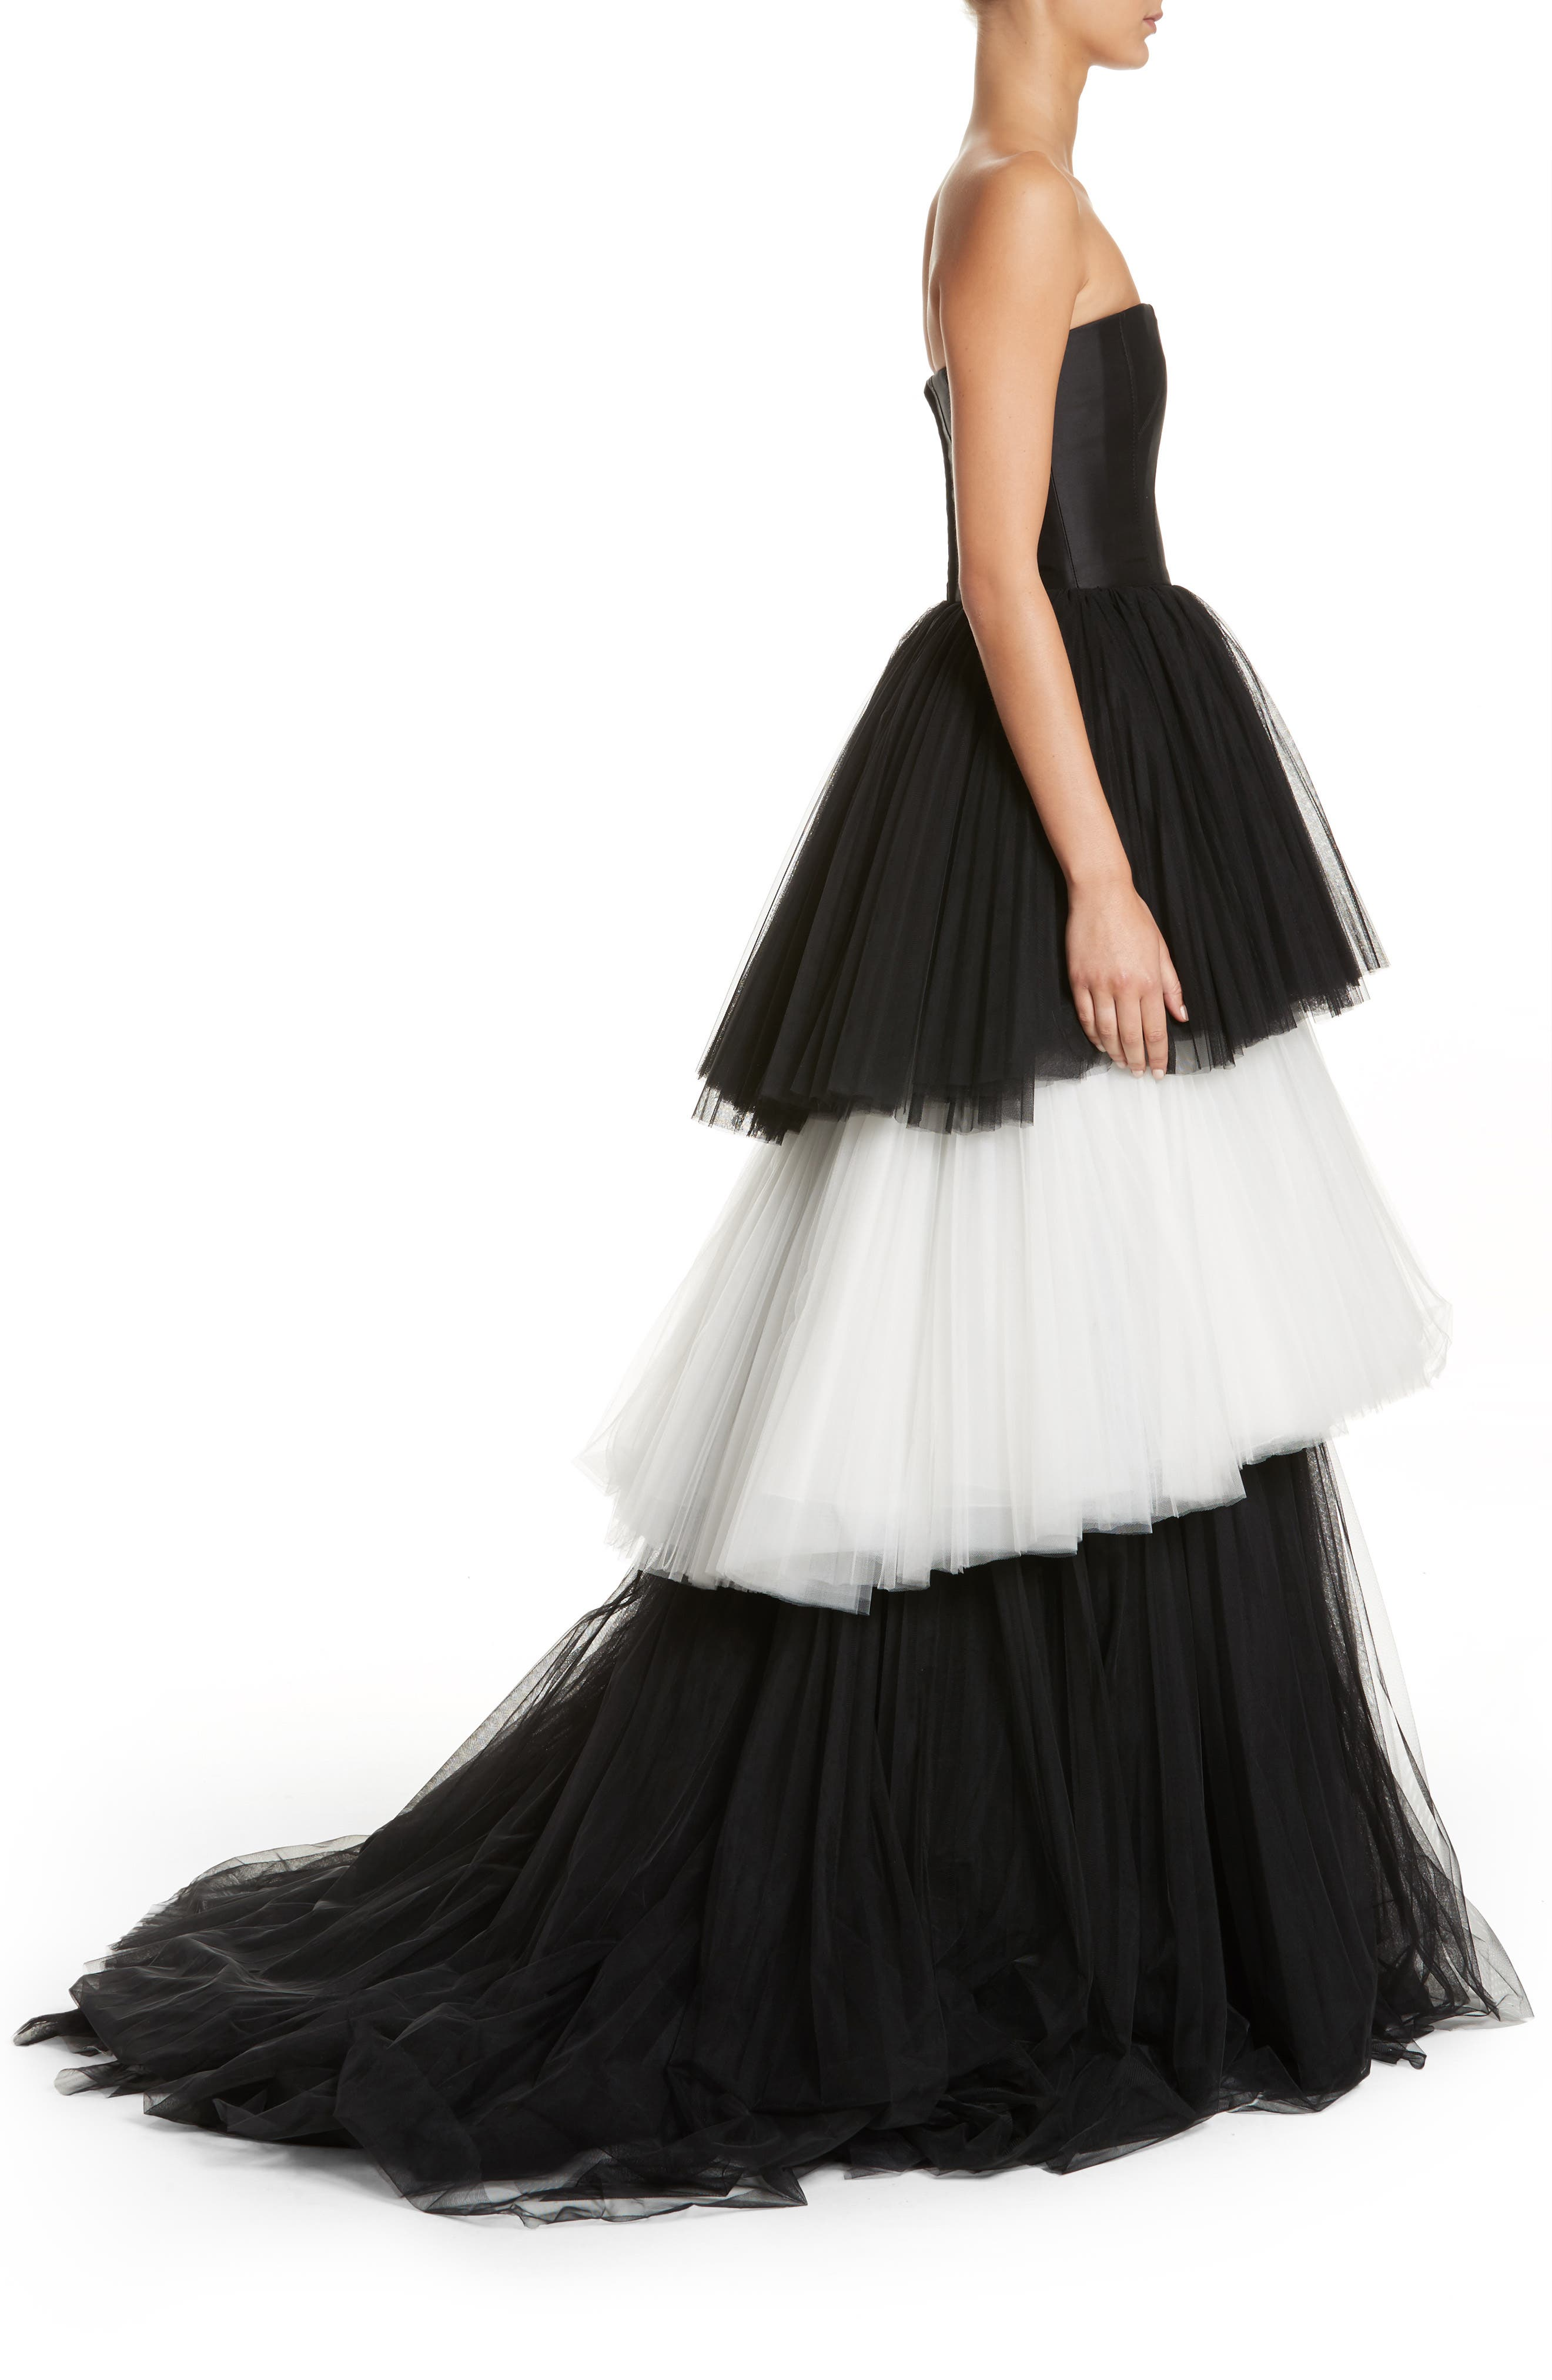 Strapless Layered Tulle Gown,                             Alternate thumbnail 3, color,                             Black/White